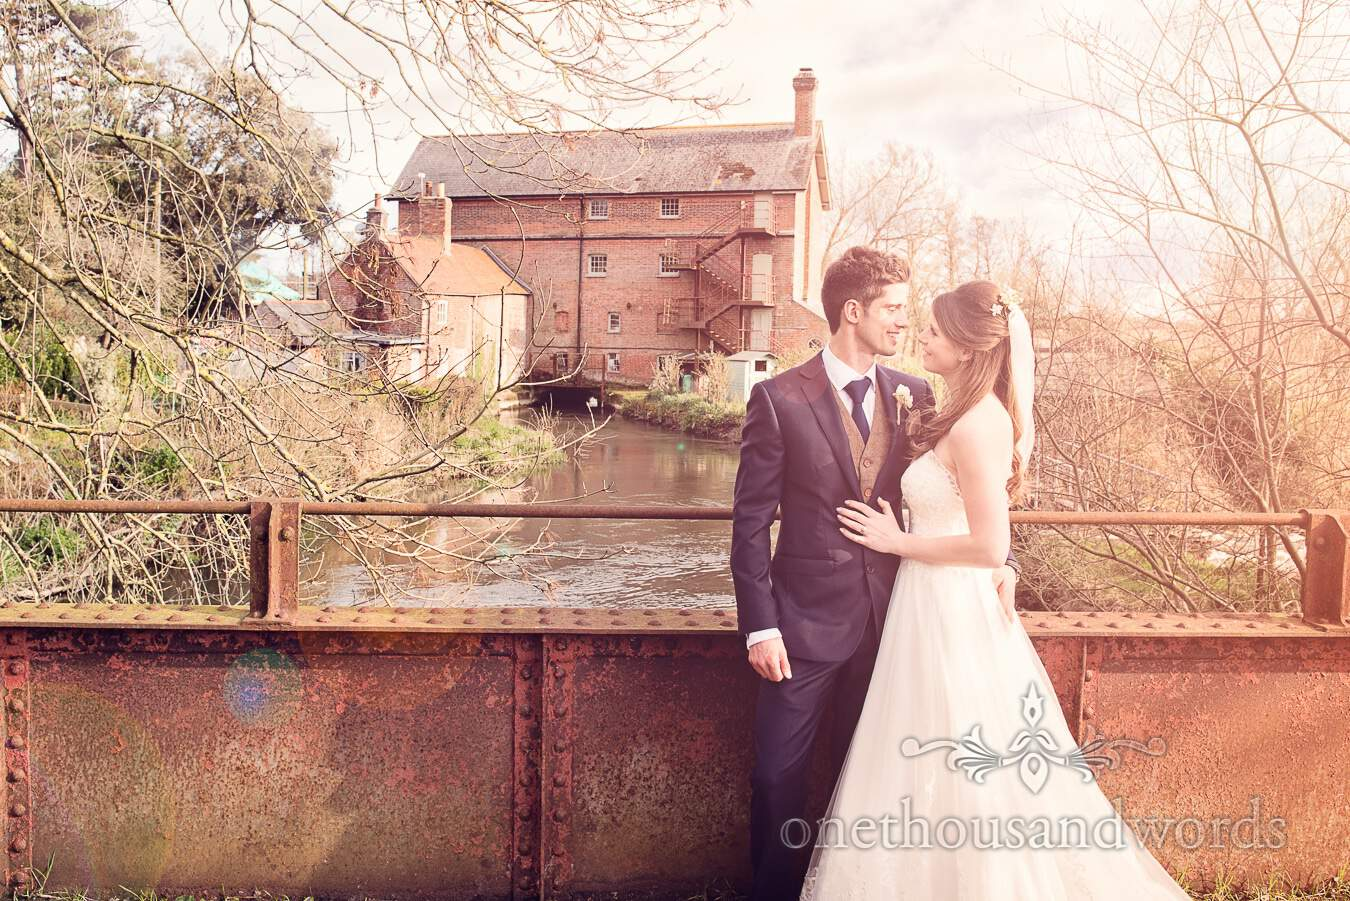 Wedding Photographs Full of Details at Sopley Mill Dorset